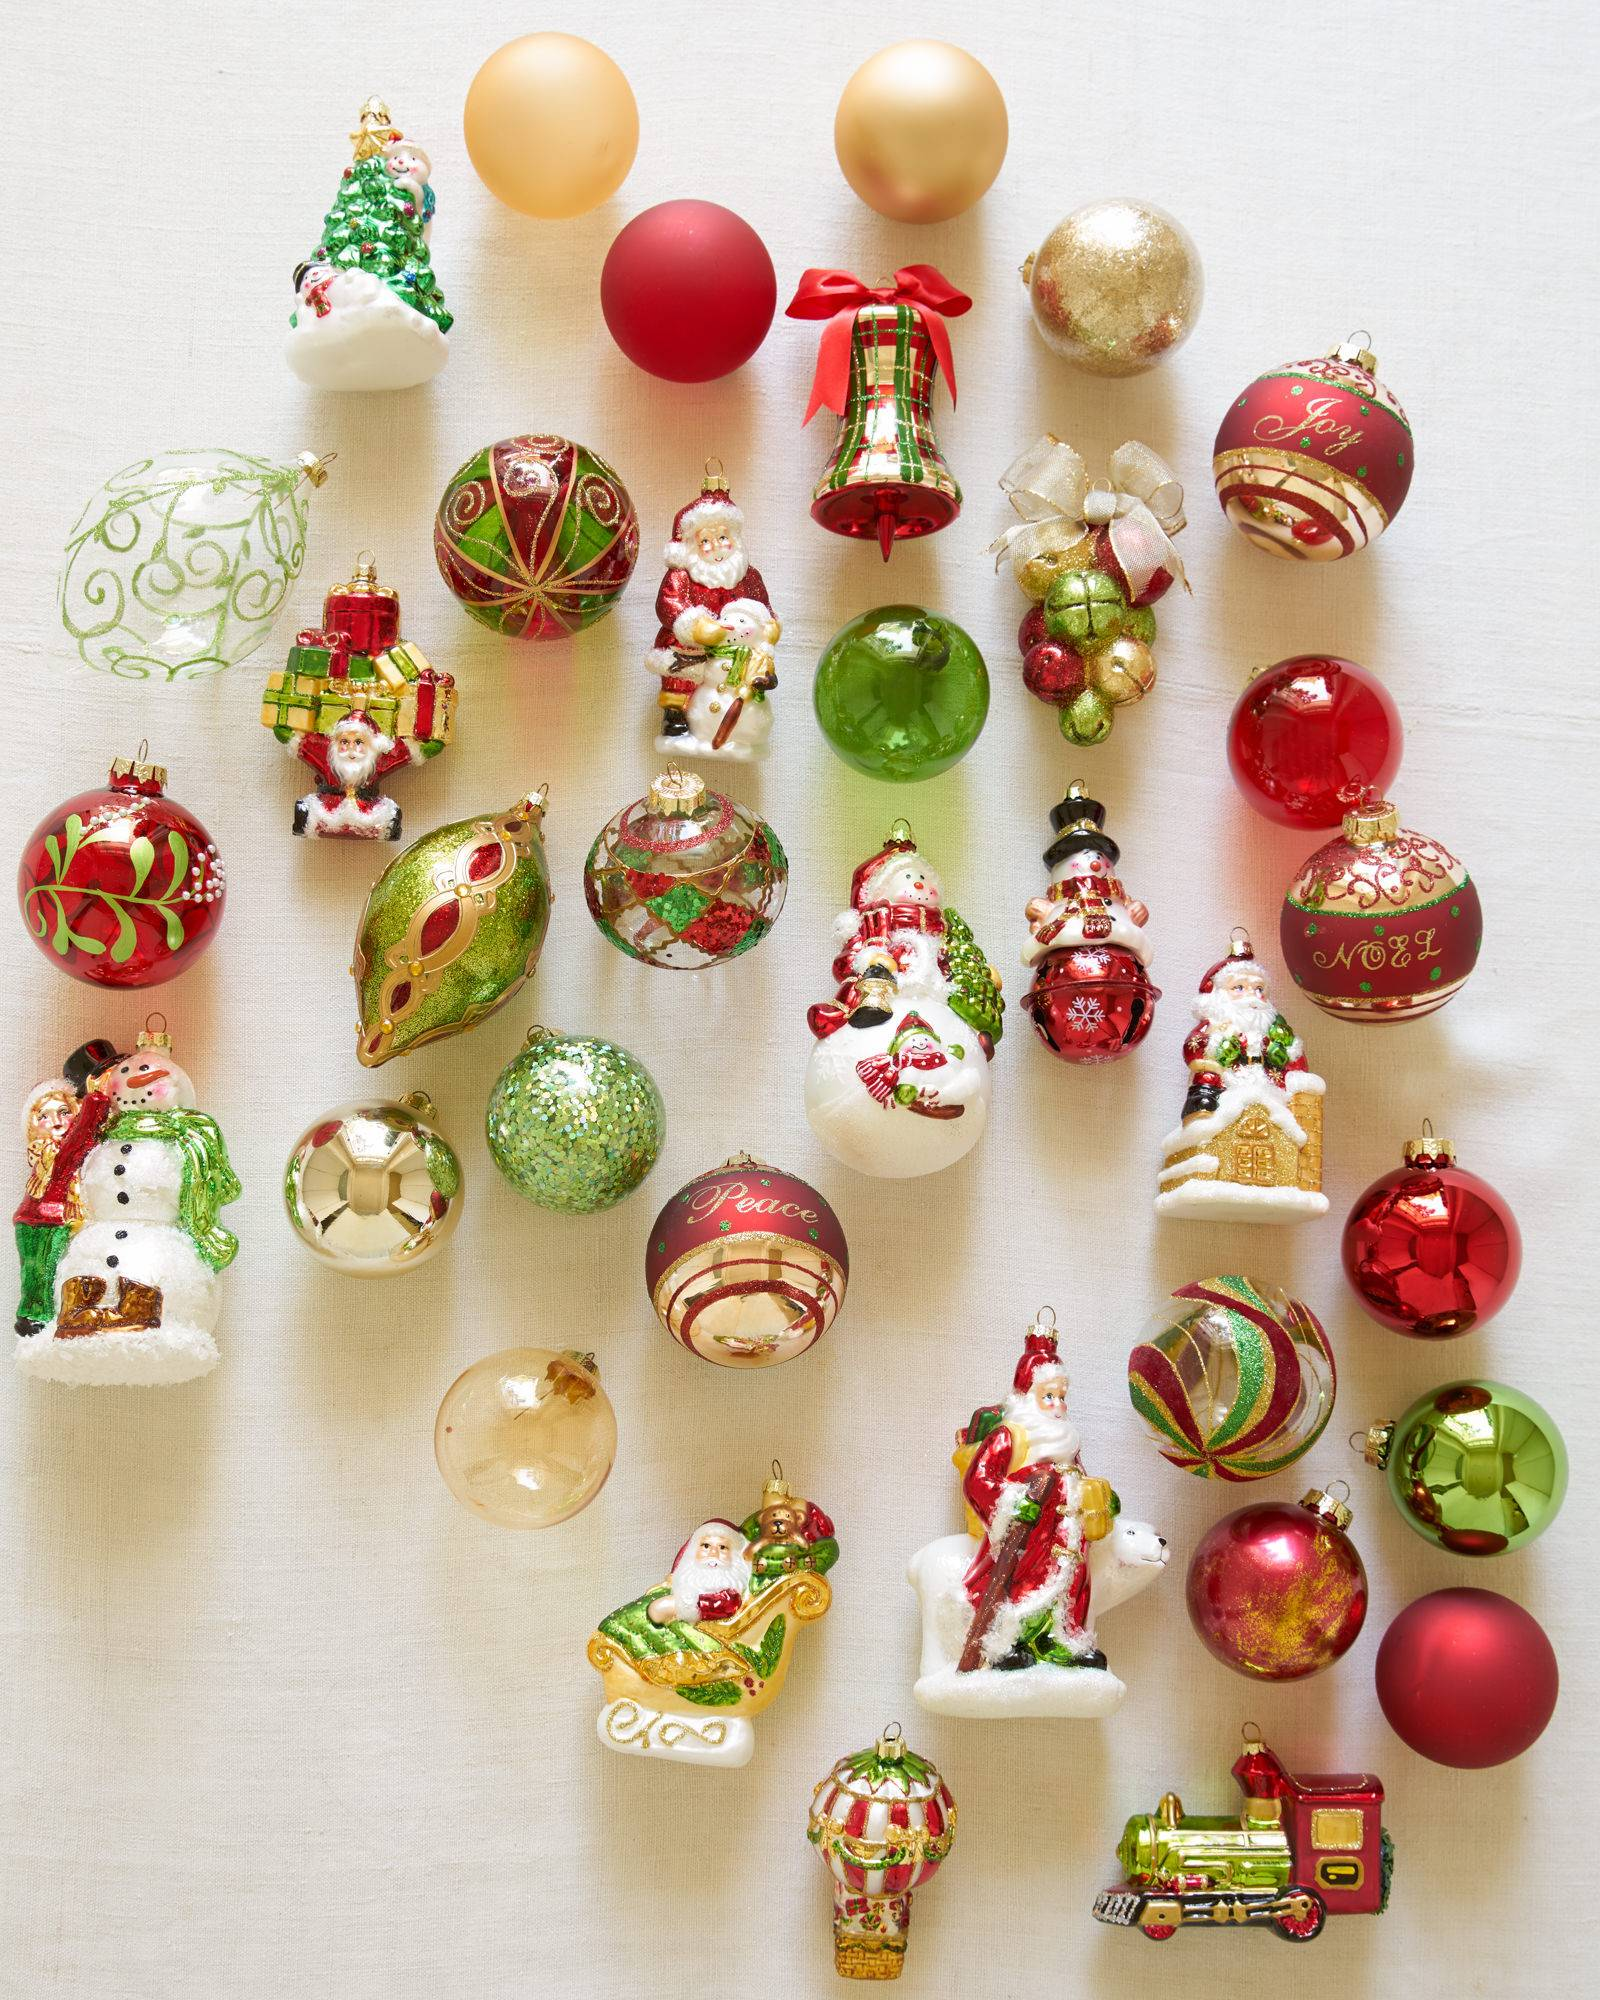 Holly christmas ornaments - Close